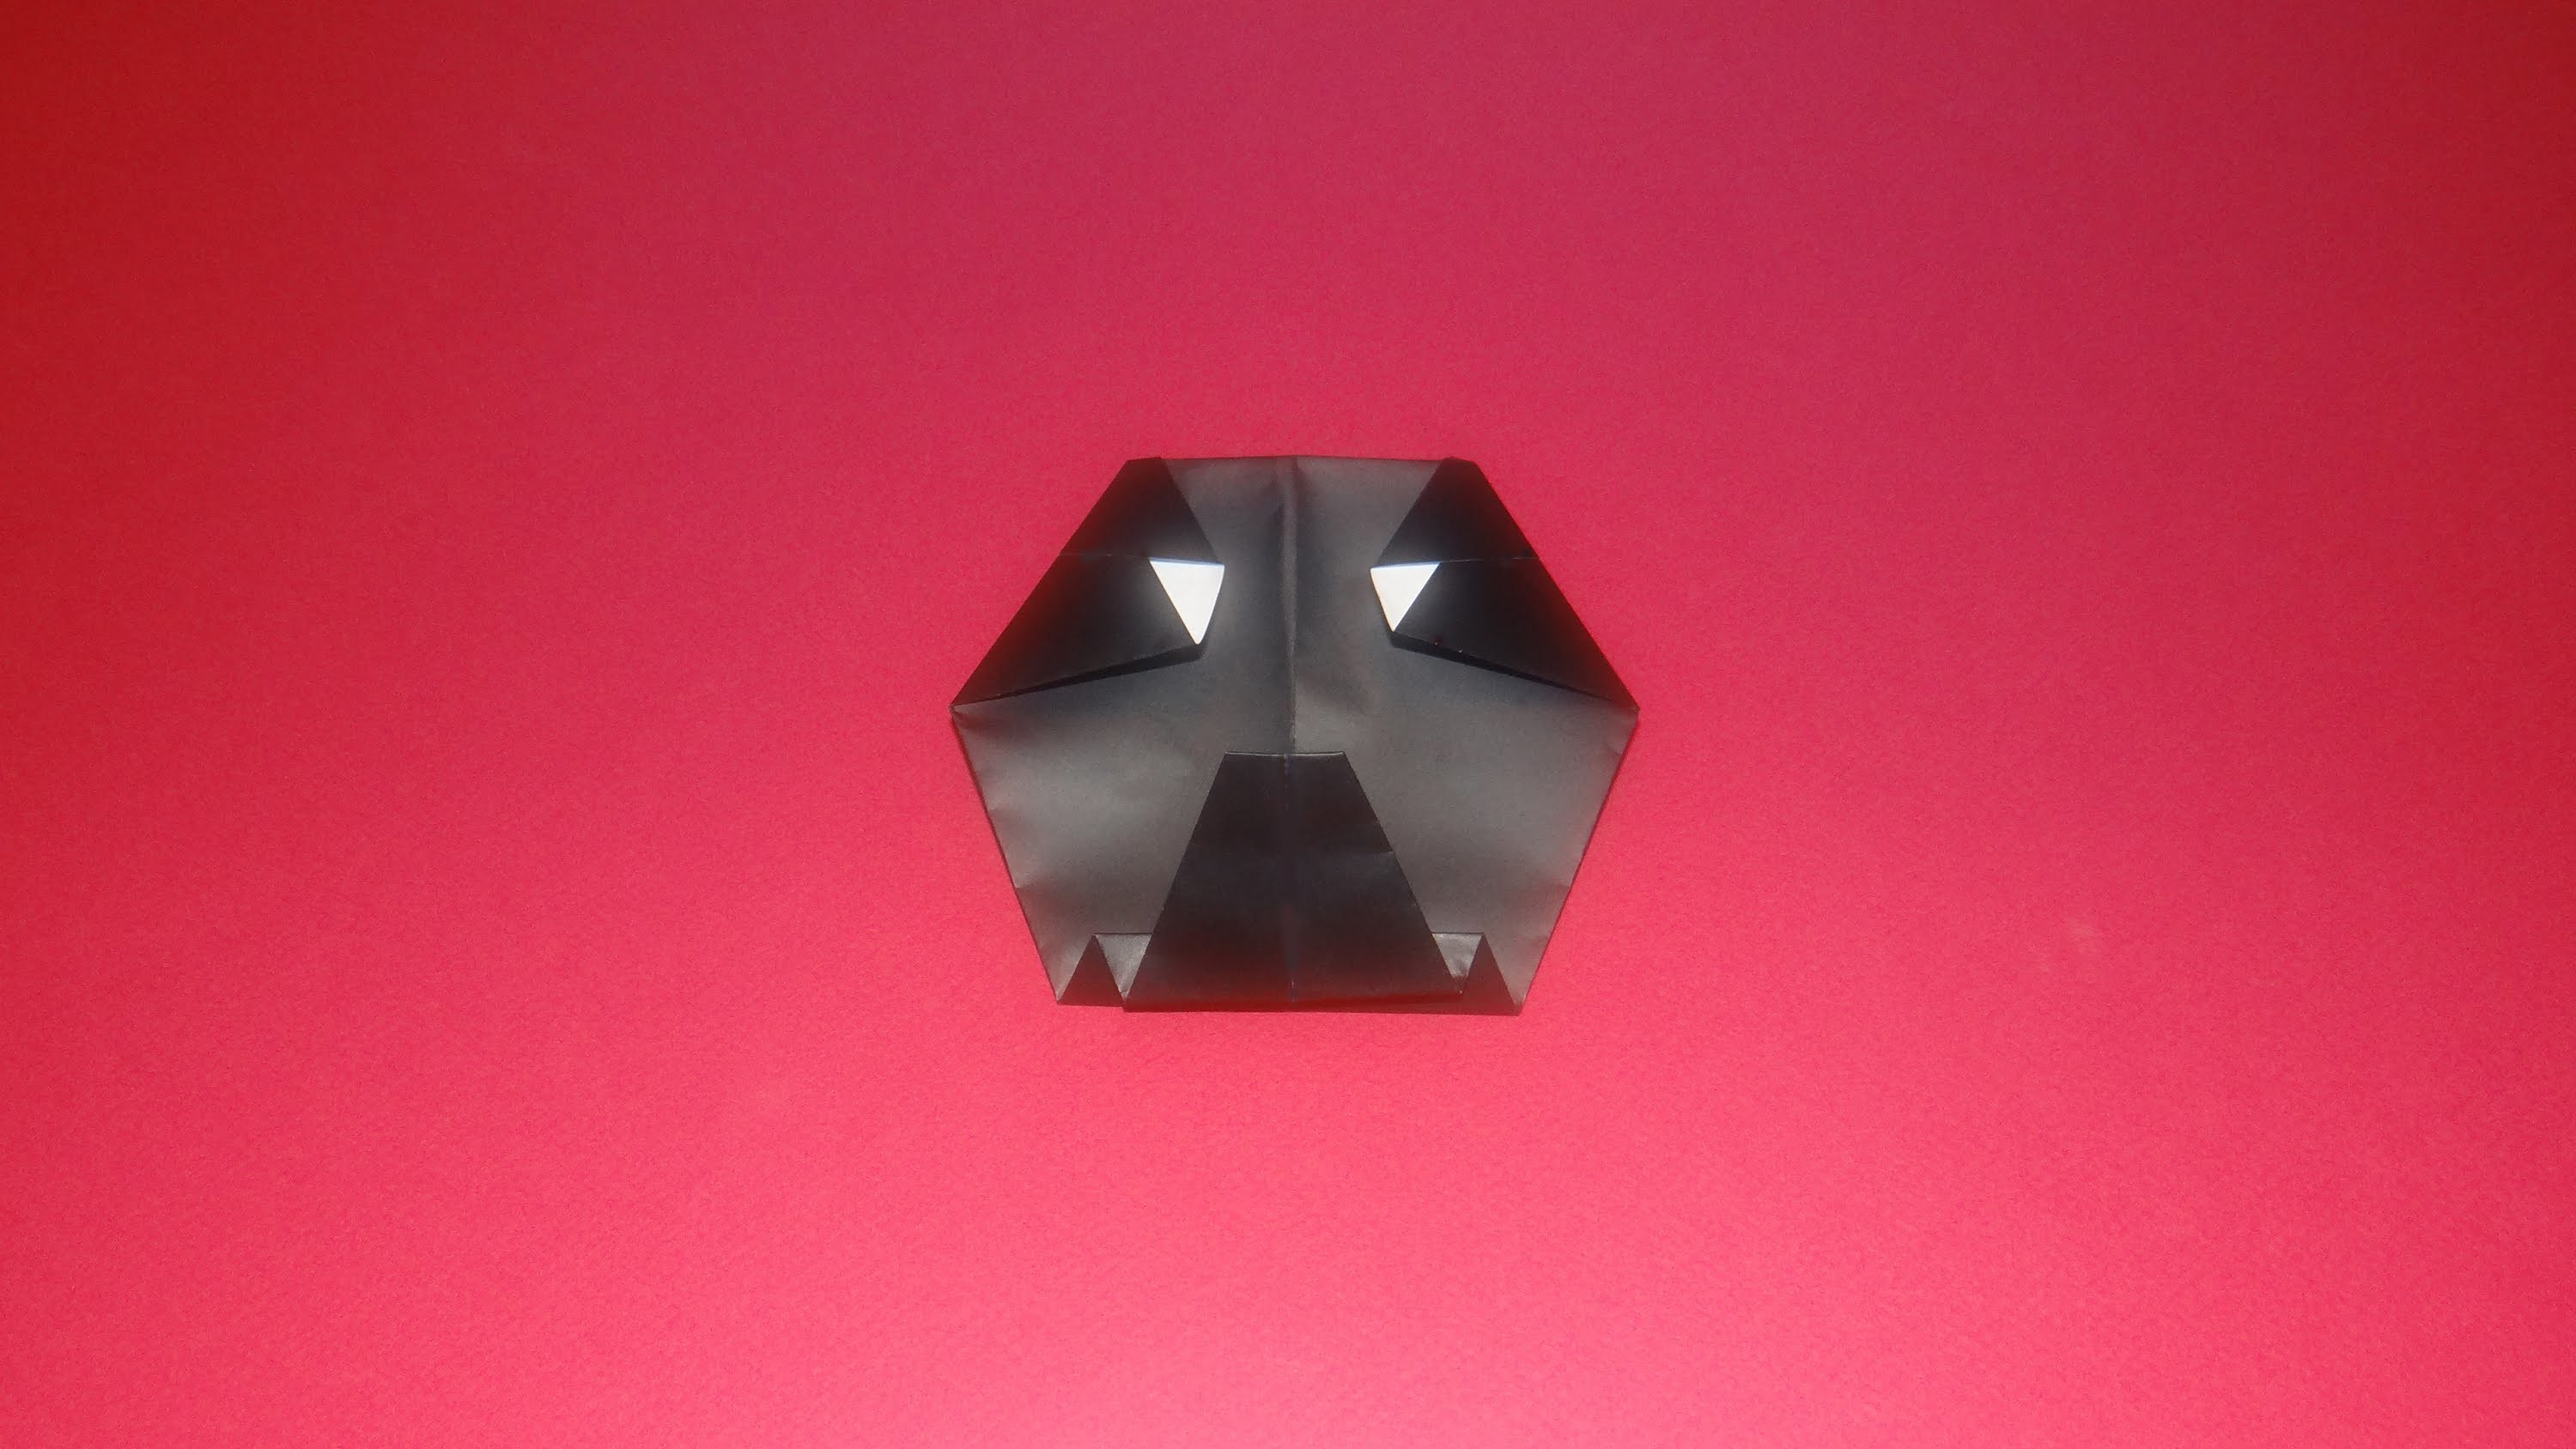 How To Make An Origami Darth Vader - Star Wars